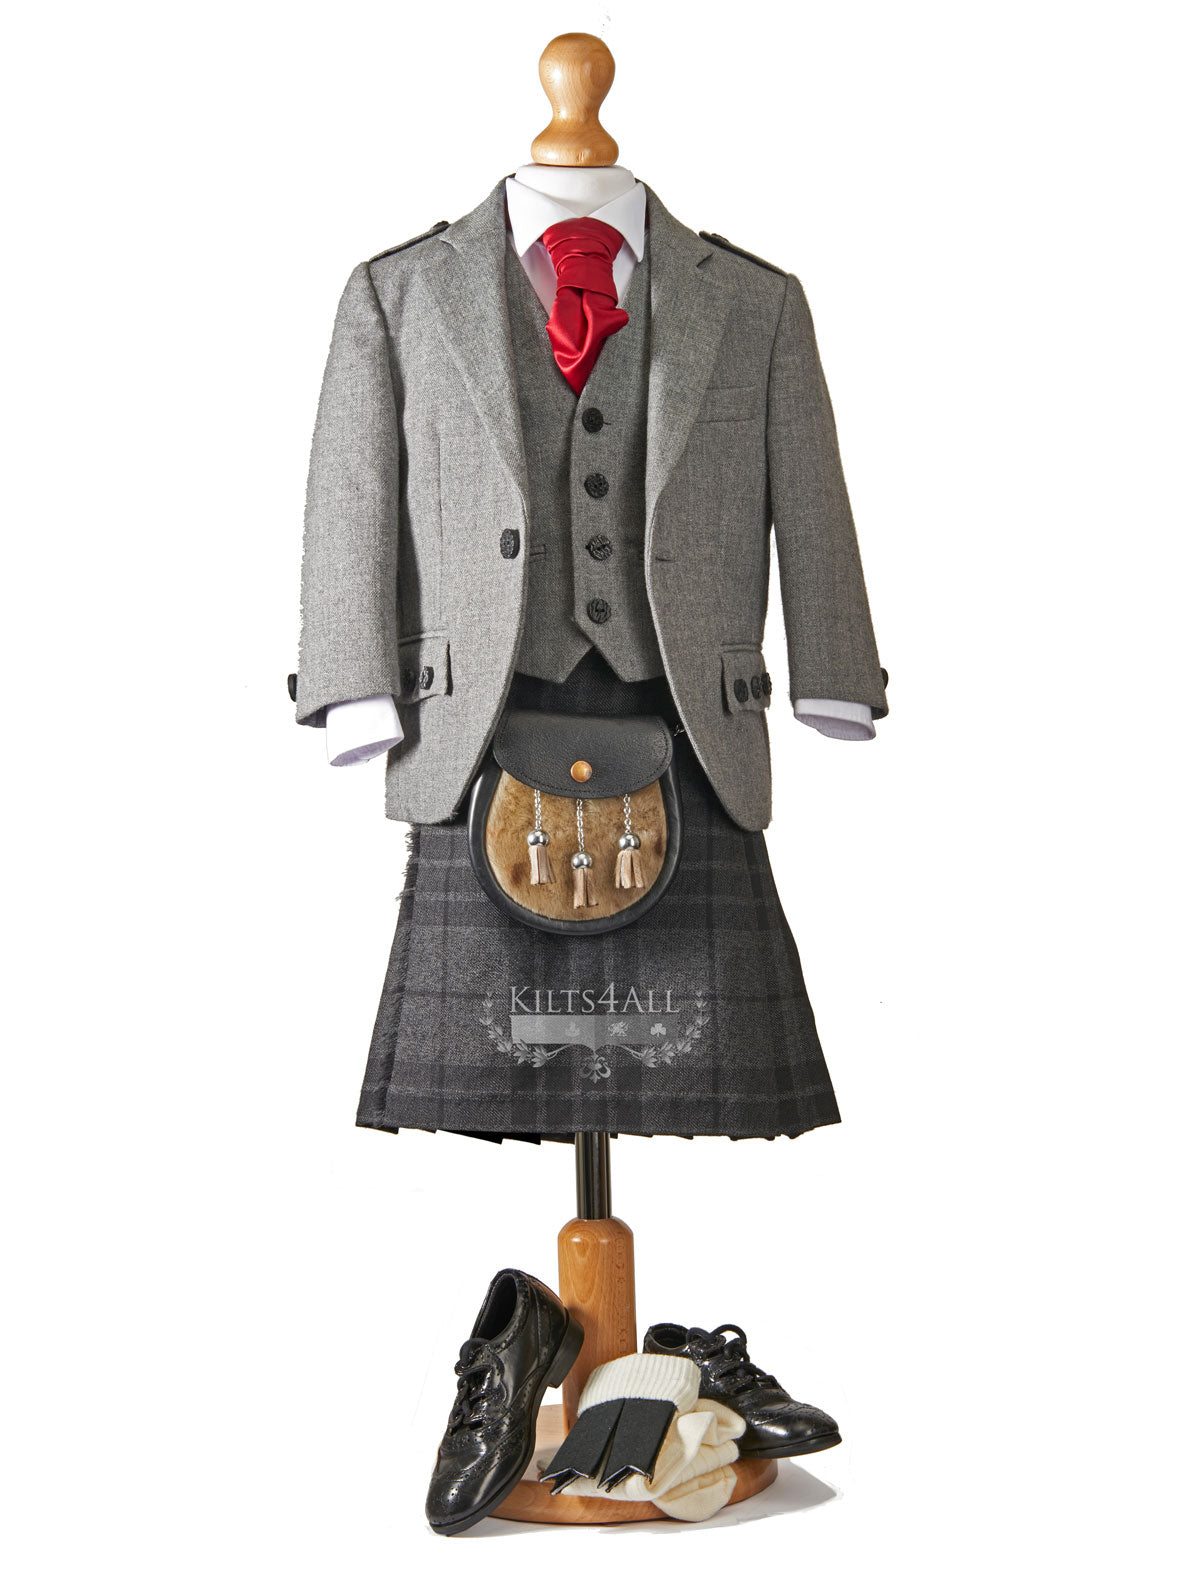 Boys Tartan Kilt Outfit to Hire - Light Grey Argyll Jacket & Waistcoat